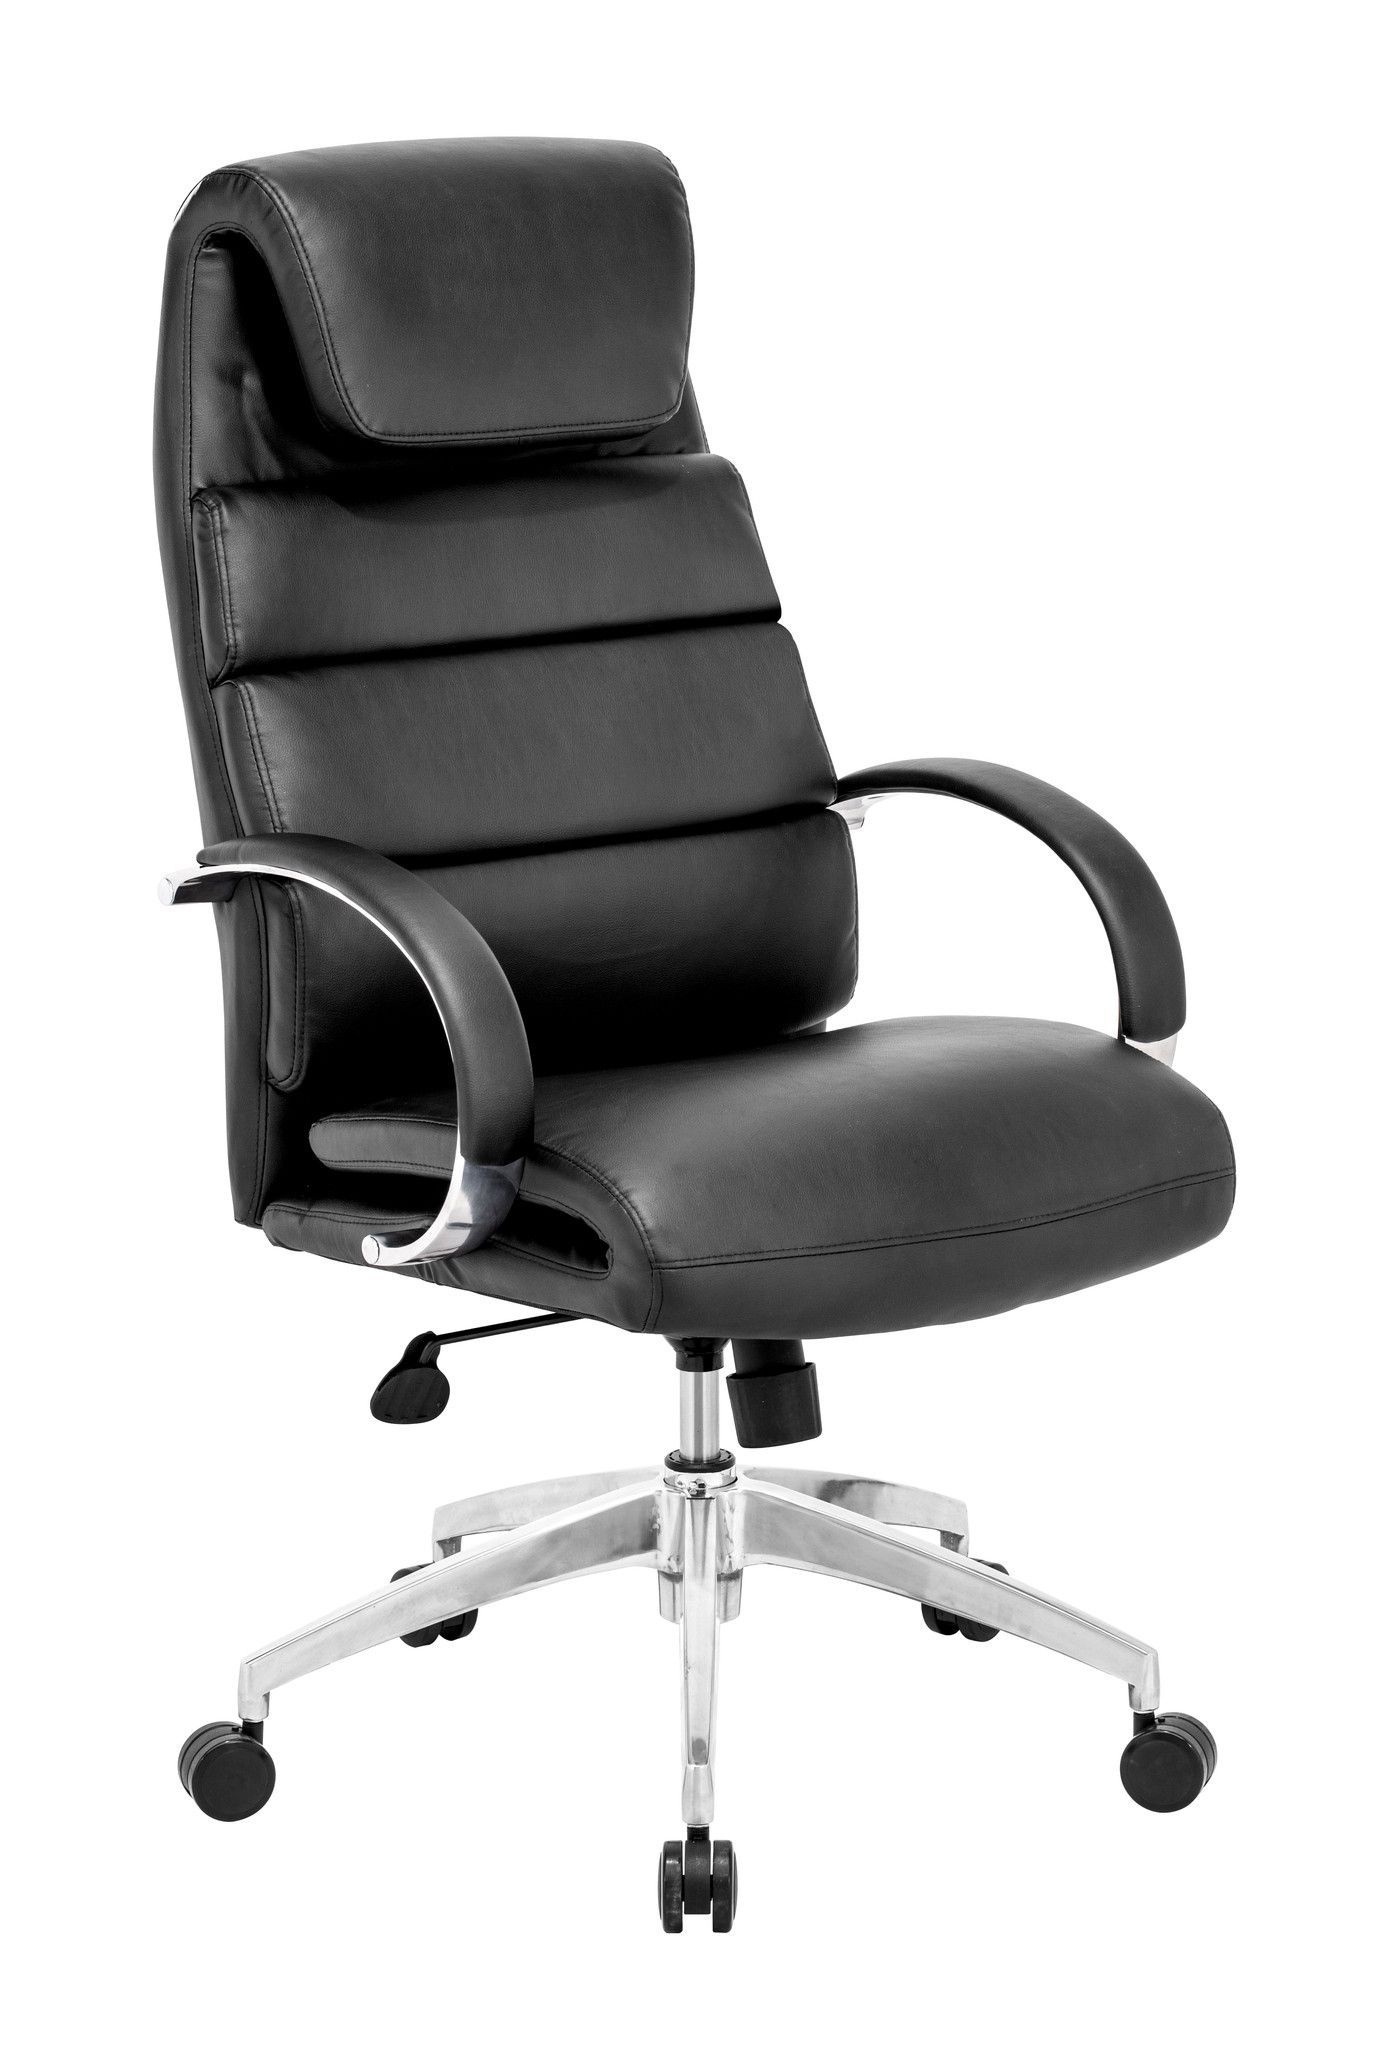 Lider Comfort Office Chair Black Modern Office Chair Black